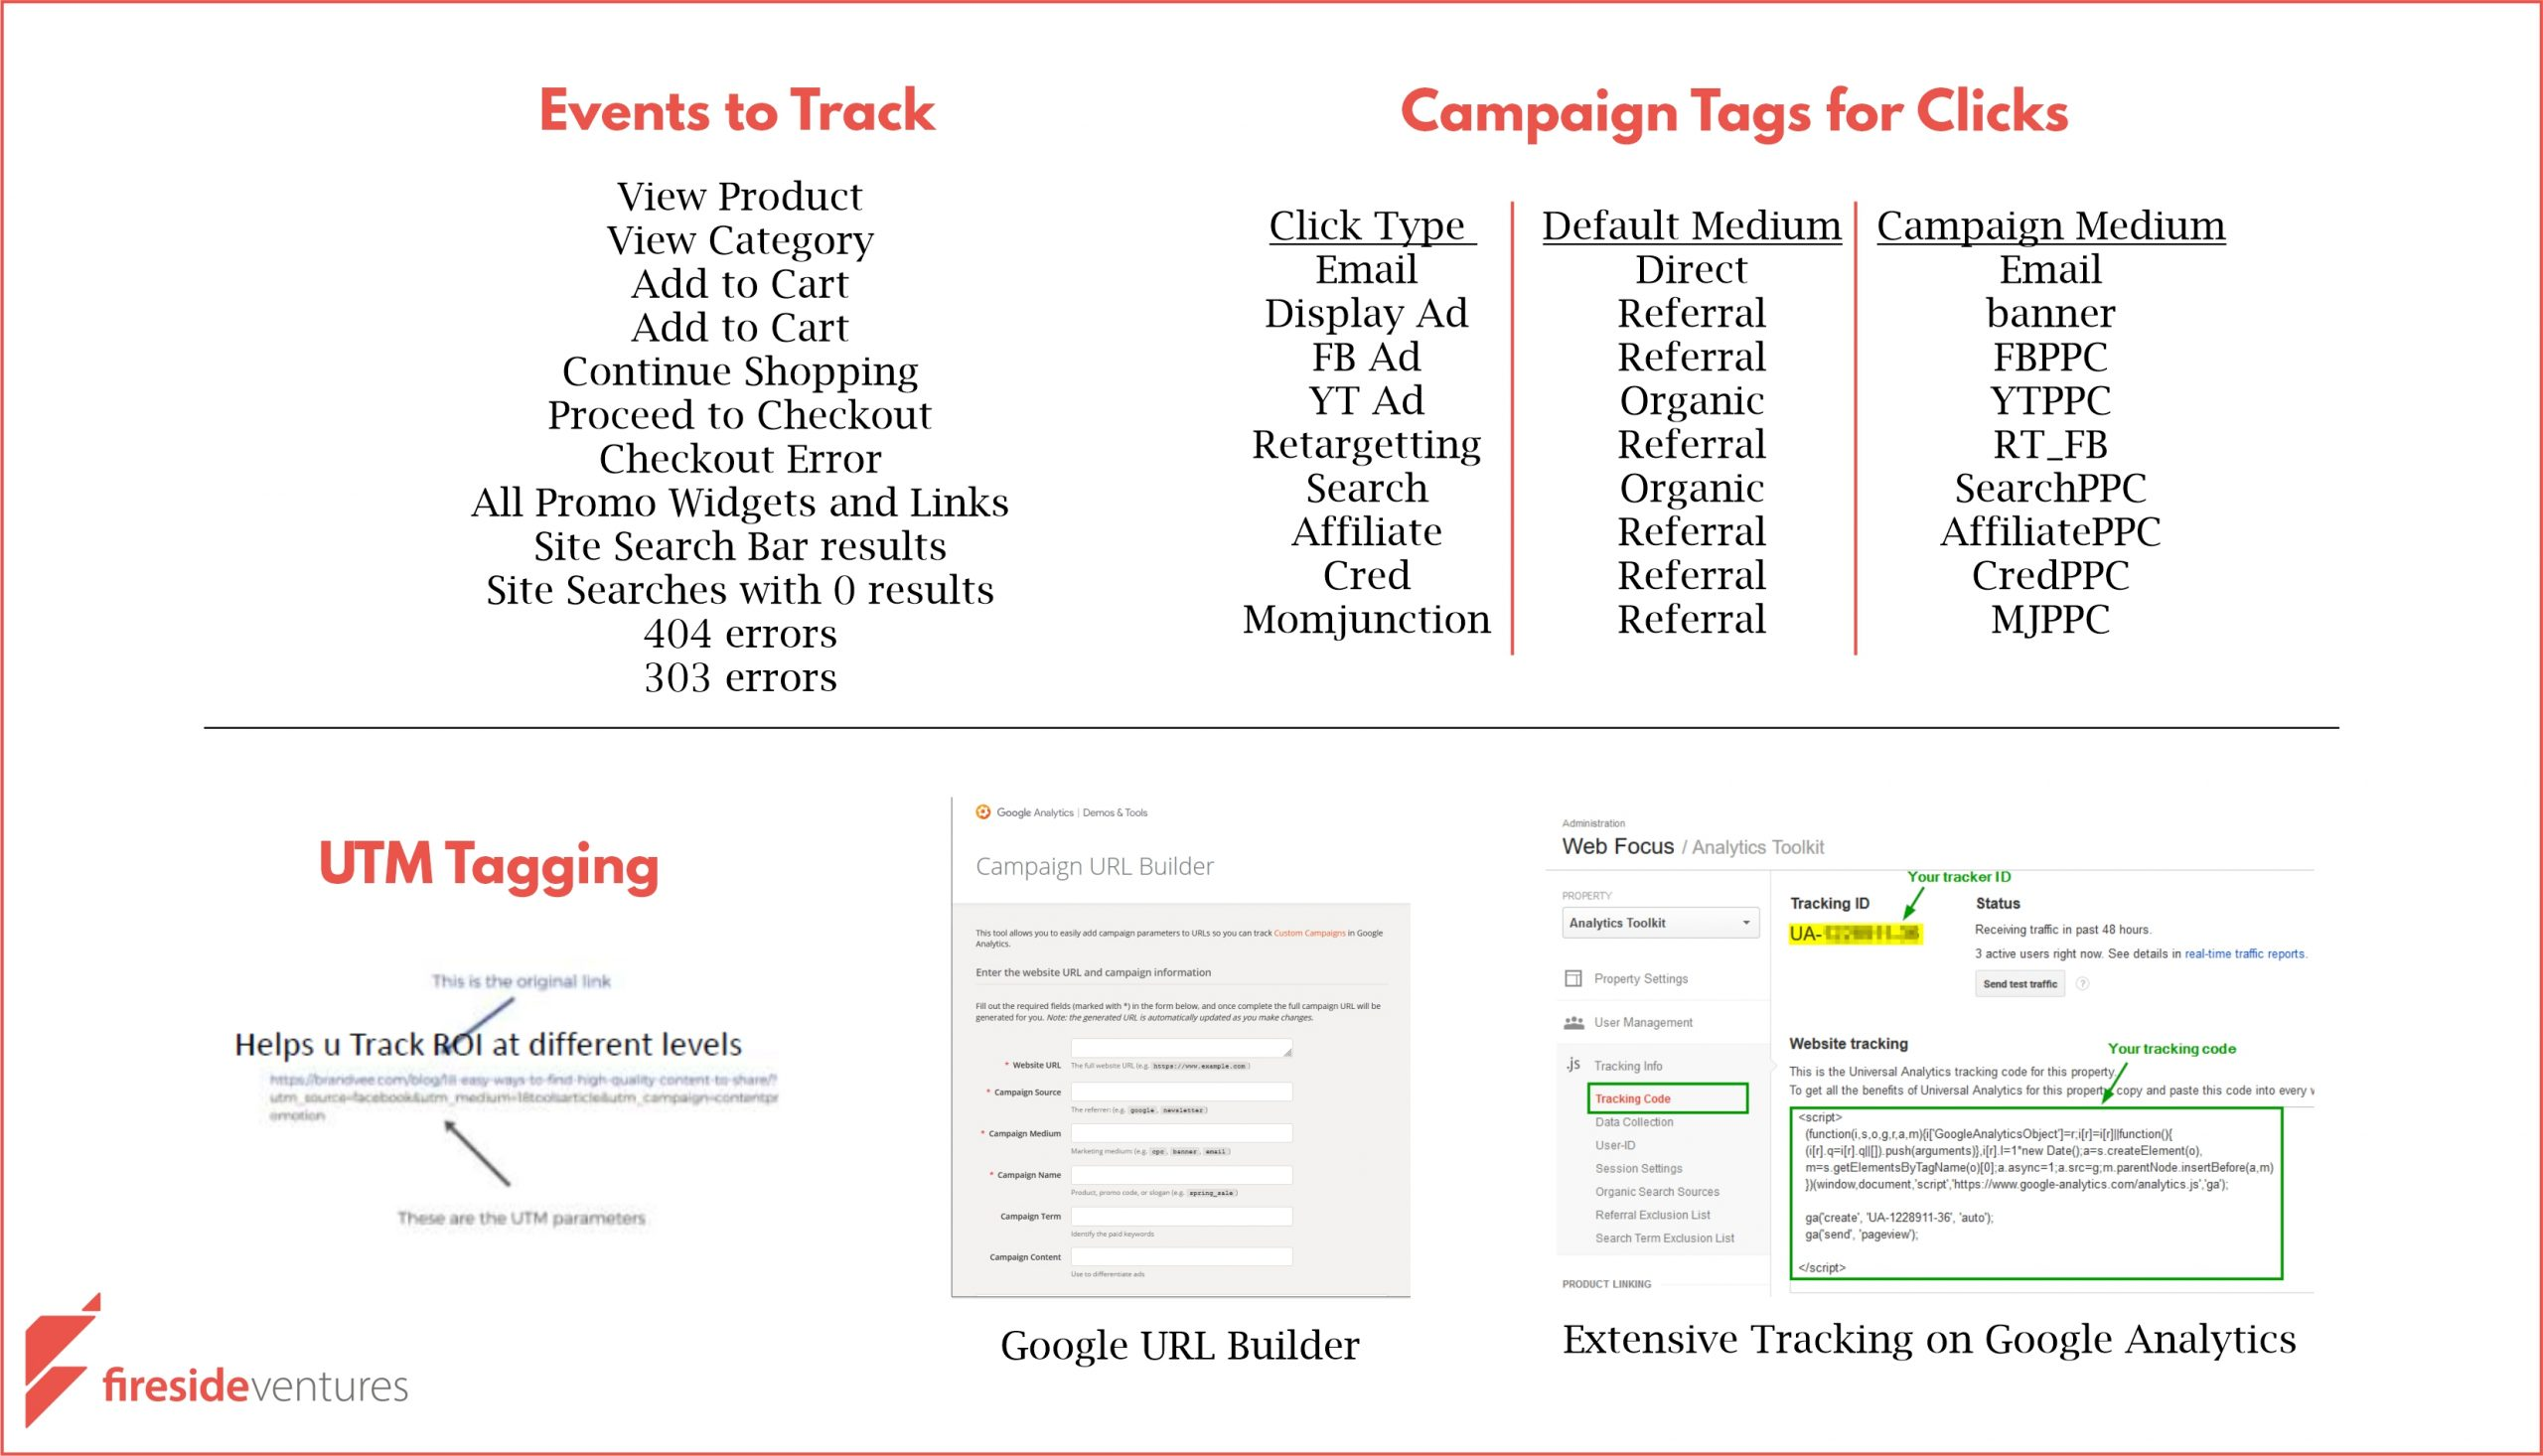 Google Analytics Traffic Tracking events setup, clicks and UTM design for Ad-campaign tracking